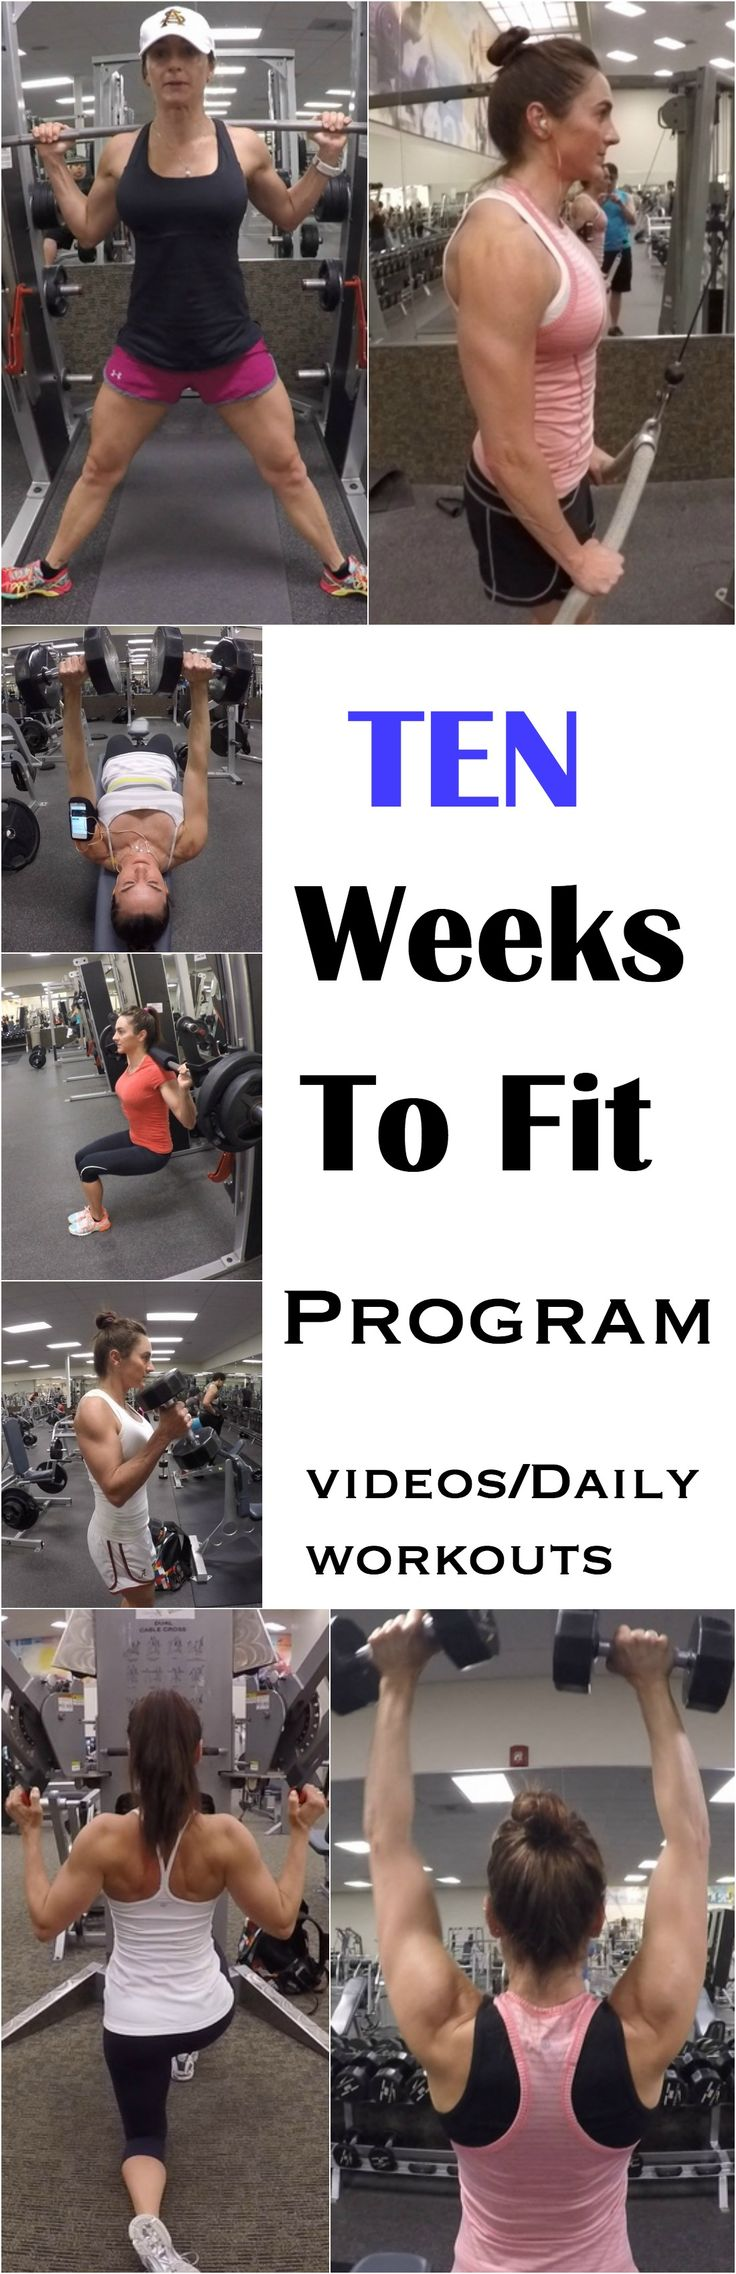 10 WEEKS TO FIT PROGRAM WITH VIDEOS AND DAILY WORKOUTS!